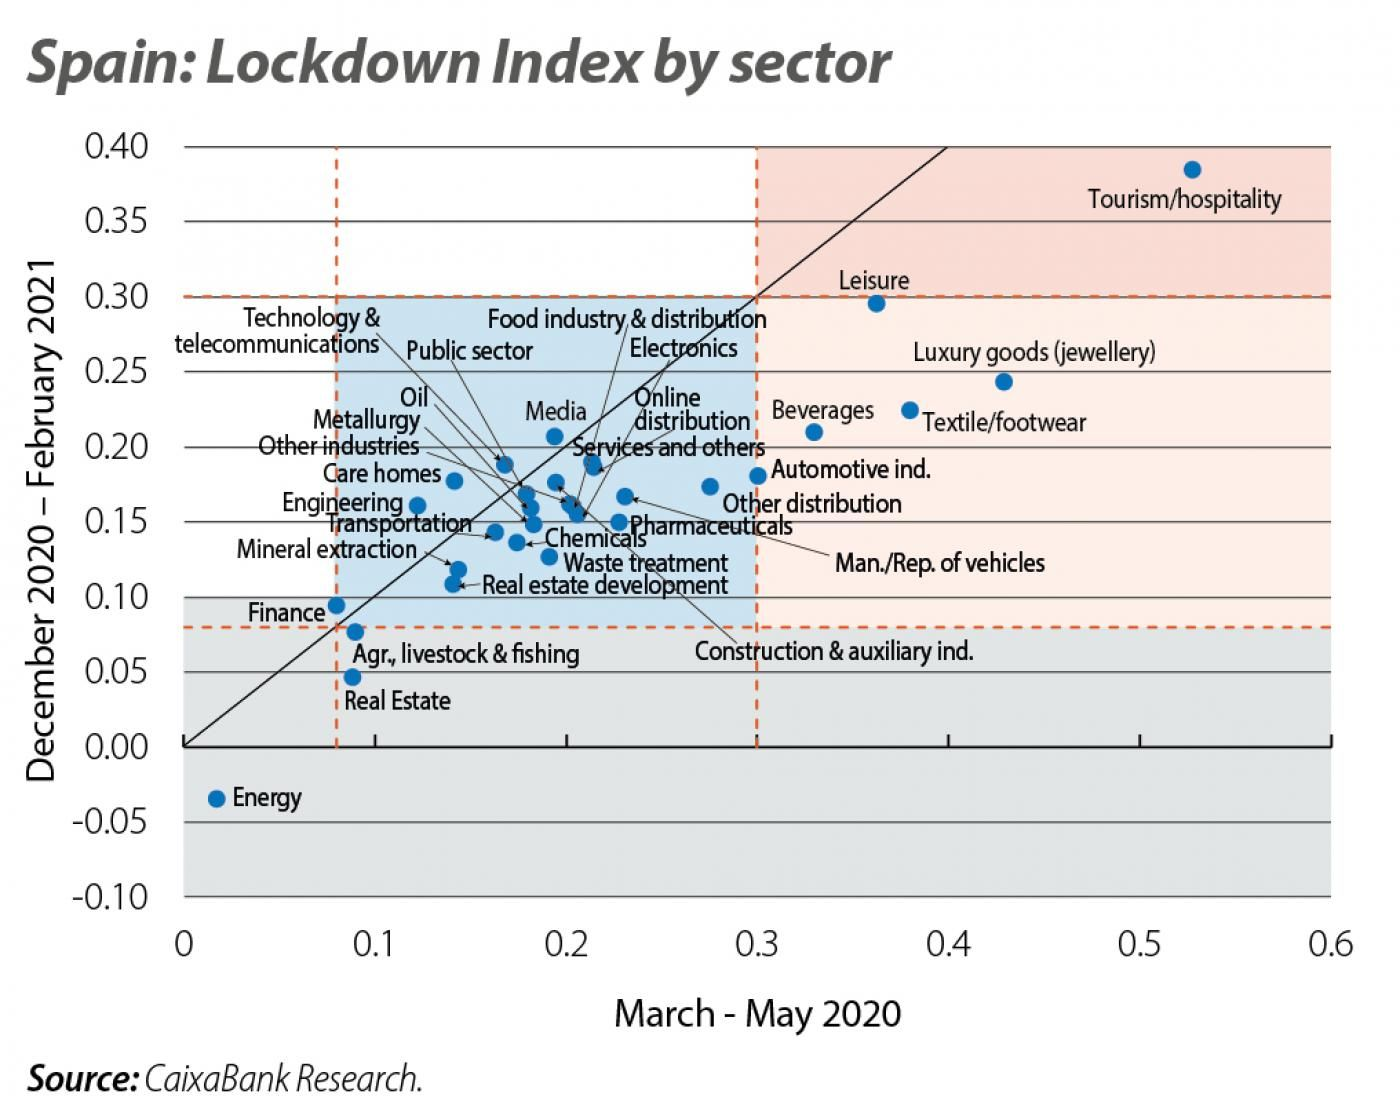 Spain: Lockdown Index by sector